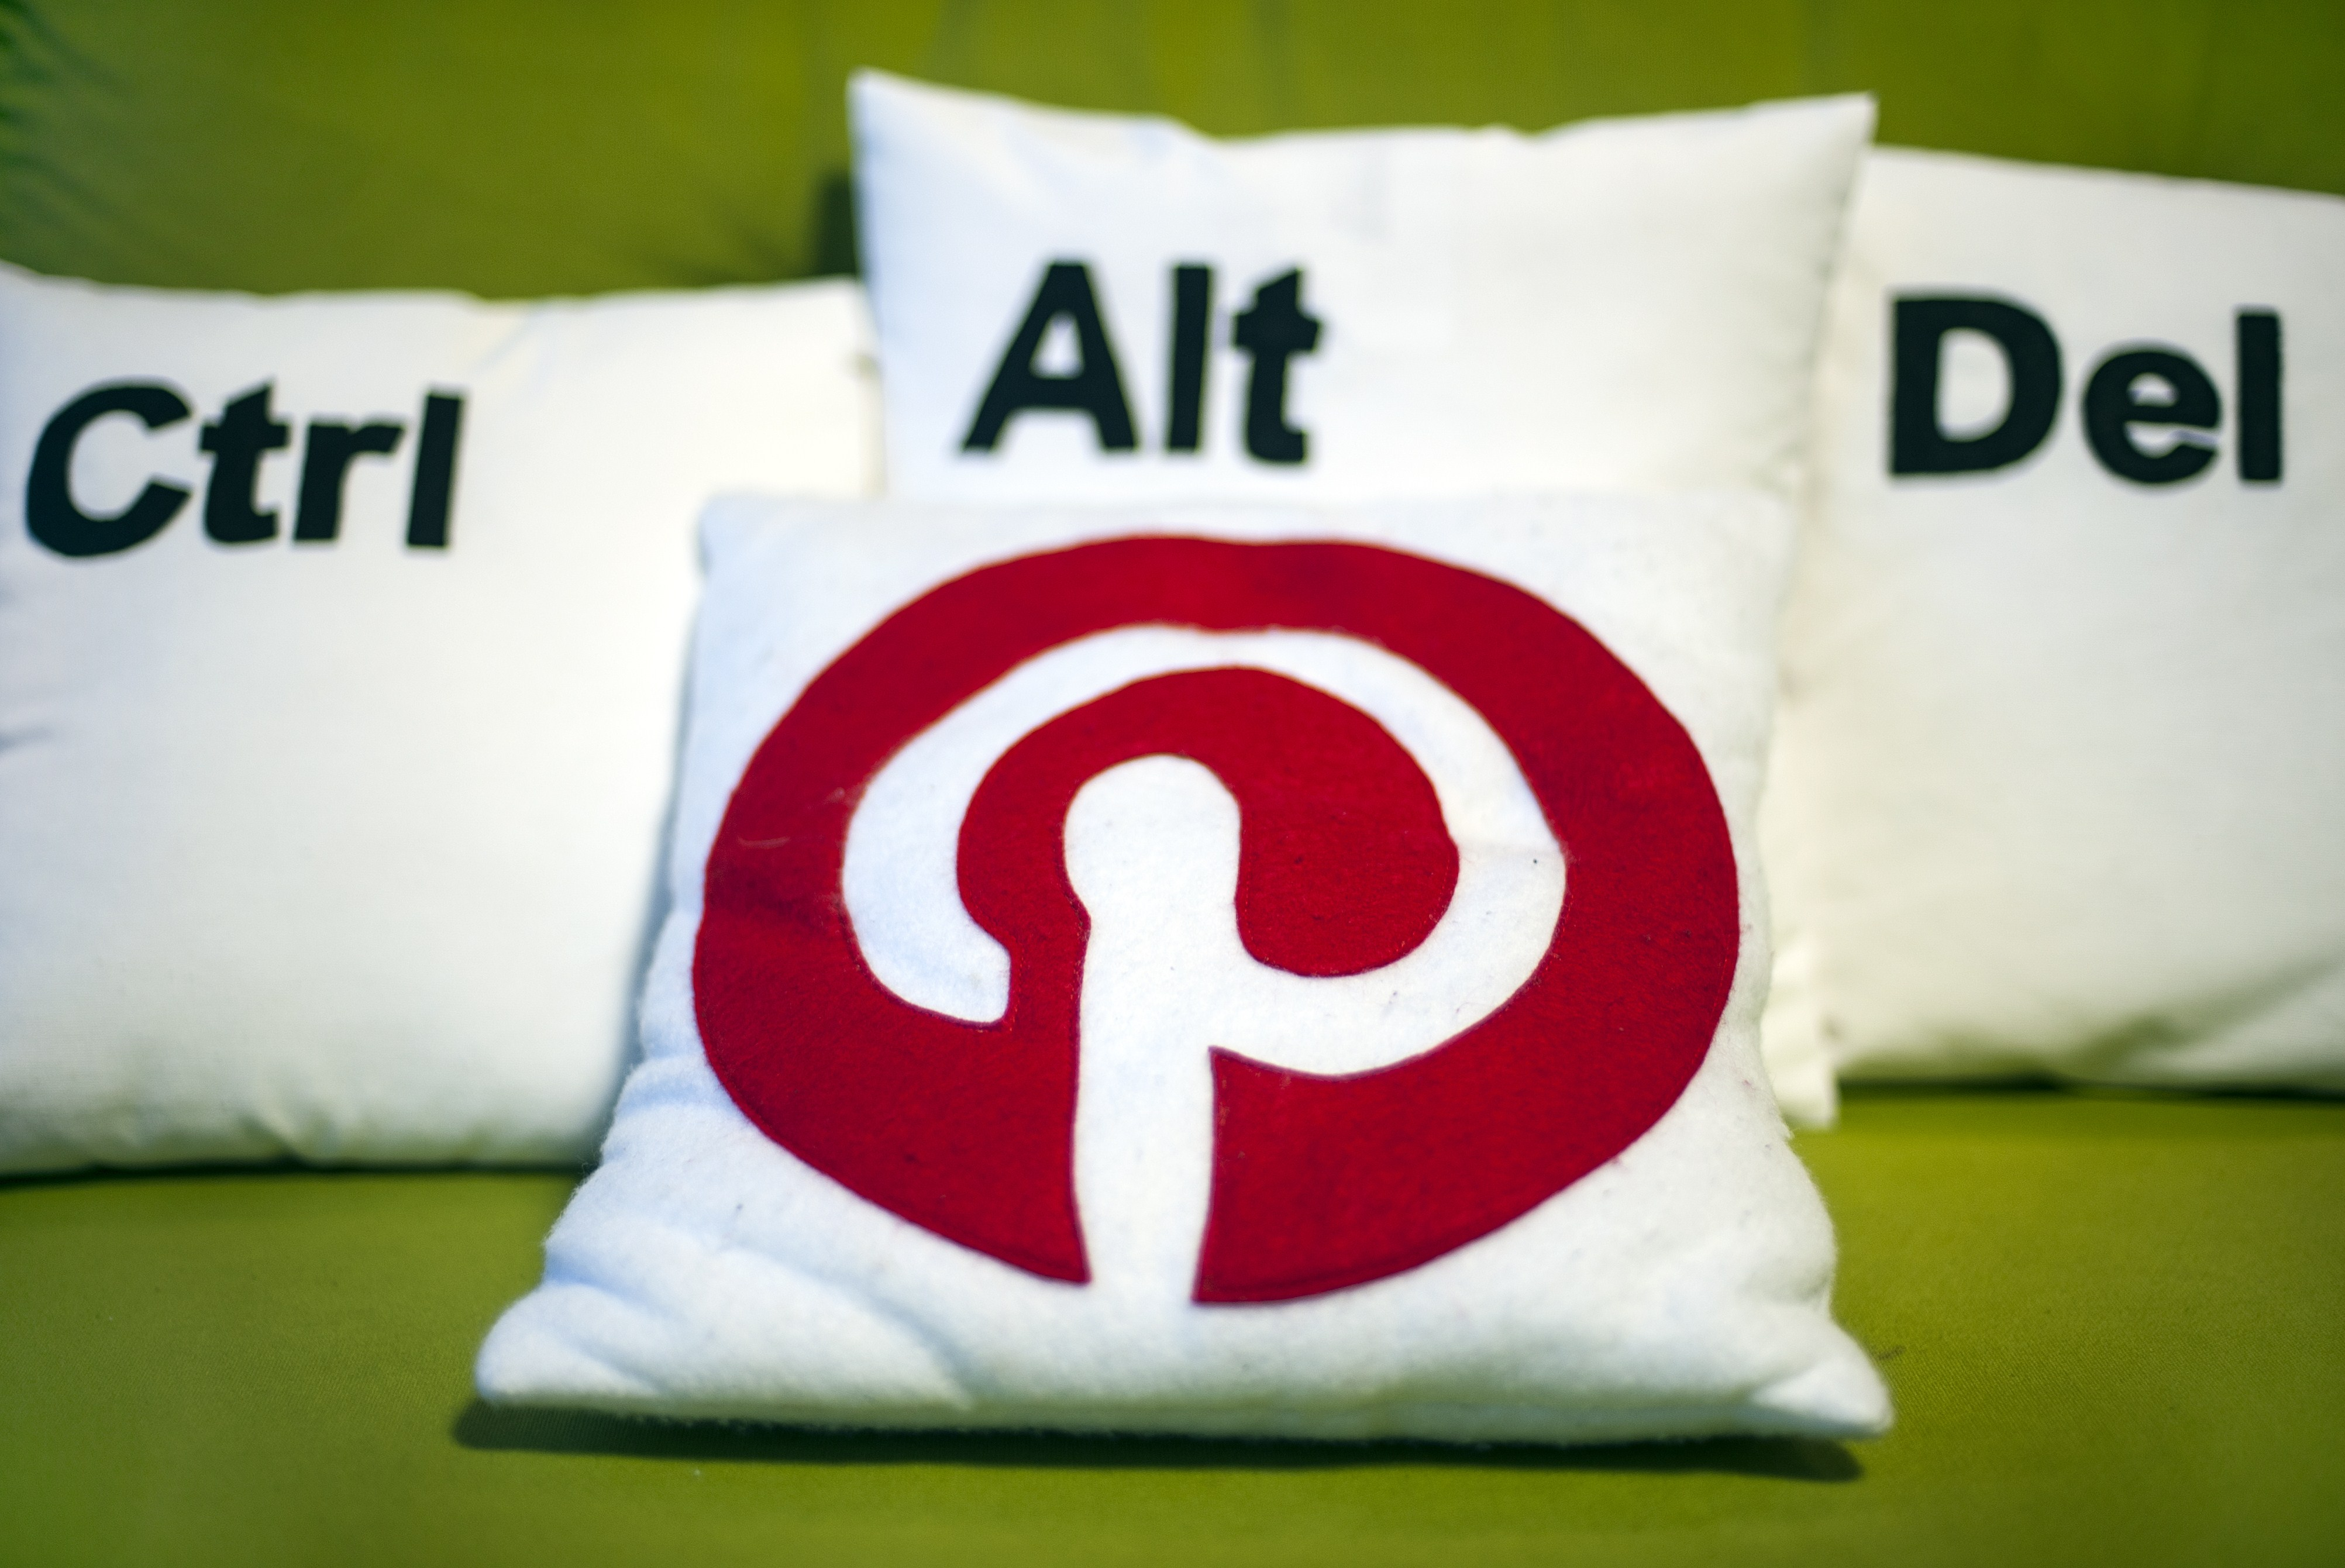 Decorative pillows set the scene at a Pinterest media event at the company's corporate headquarters office in San Francisco, California on April 24, 2014.